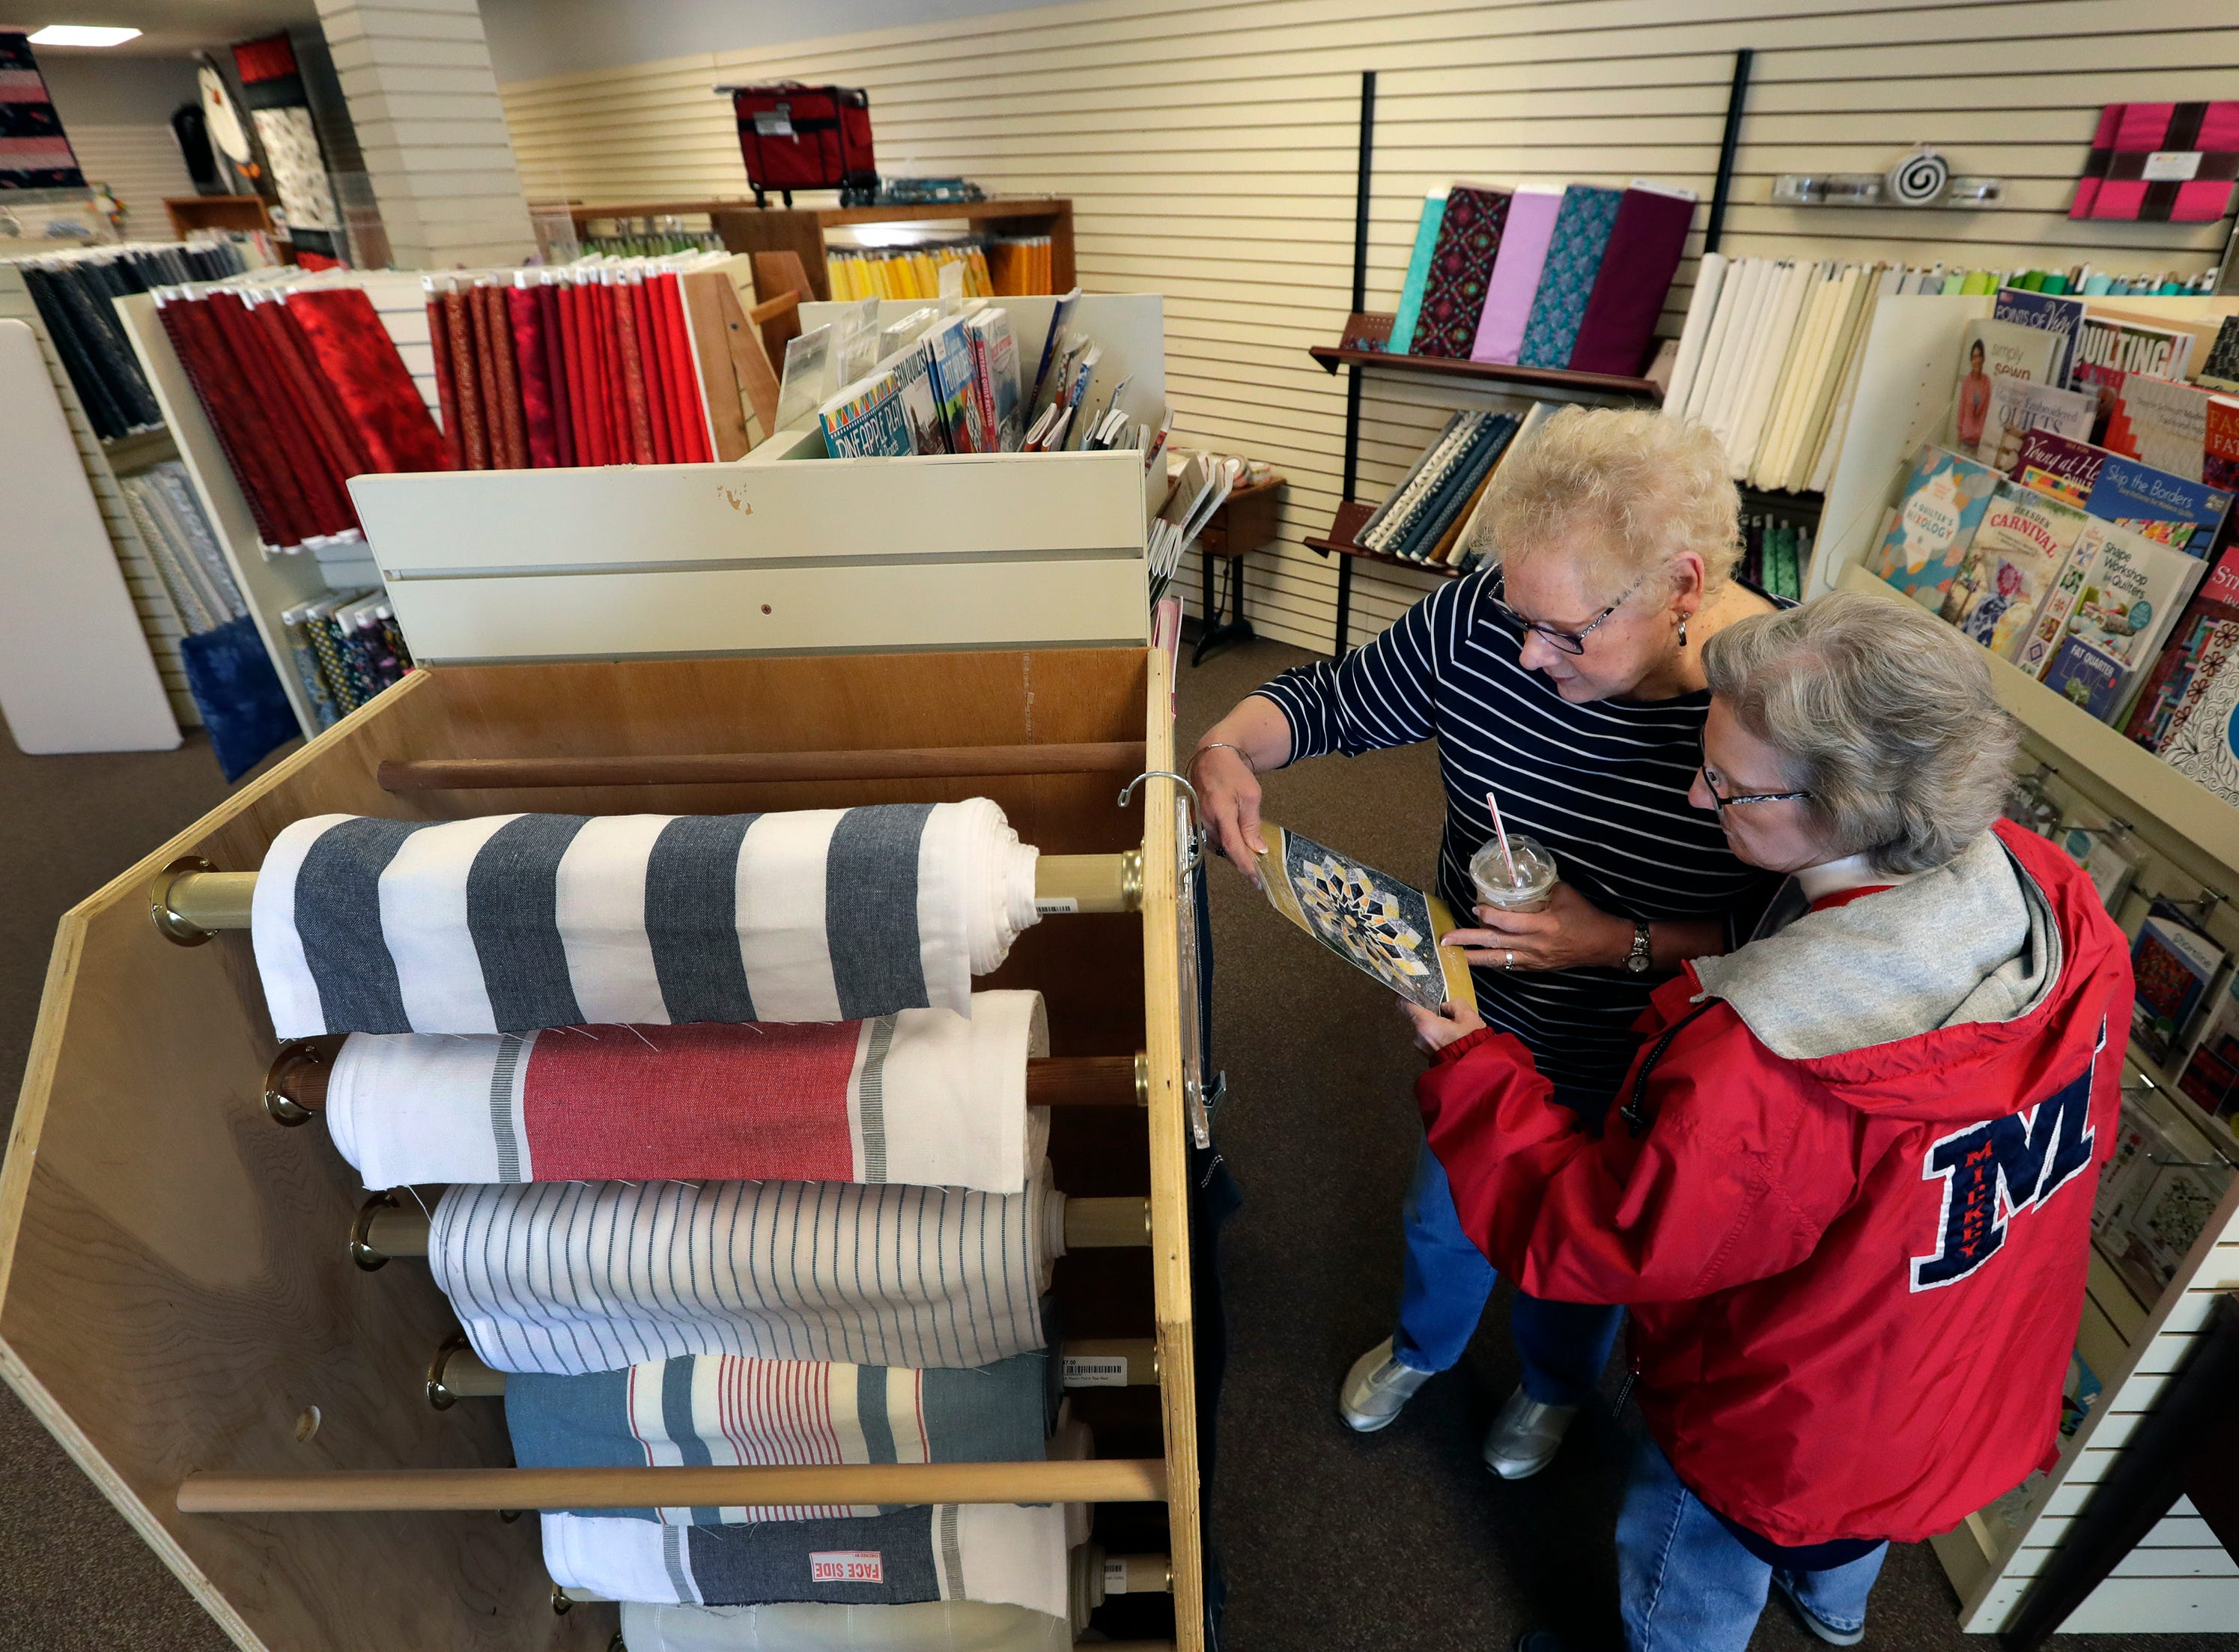 Kathy Eisenschink, left, and Linda Pristelski check out new products Tuesday, March 26, 2019, at Fox Cities Quilt Co., in Appleton, Wis. The two are both from Green Bay.Dan Powers/USA TODAY NETWORK-Wisconsin